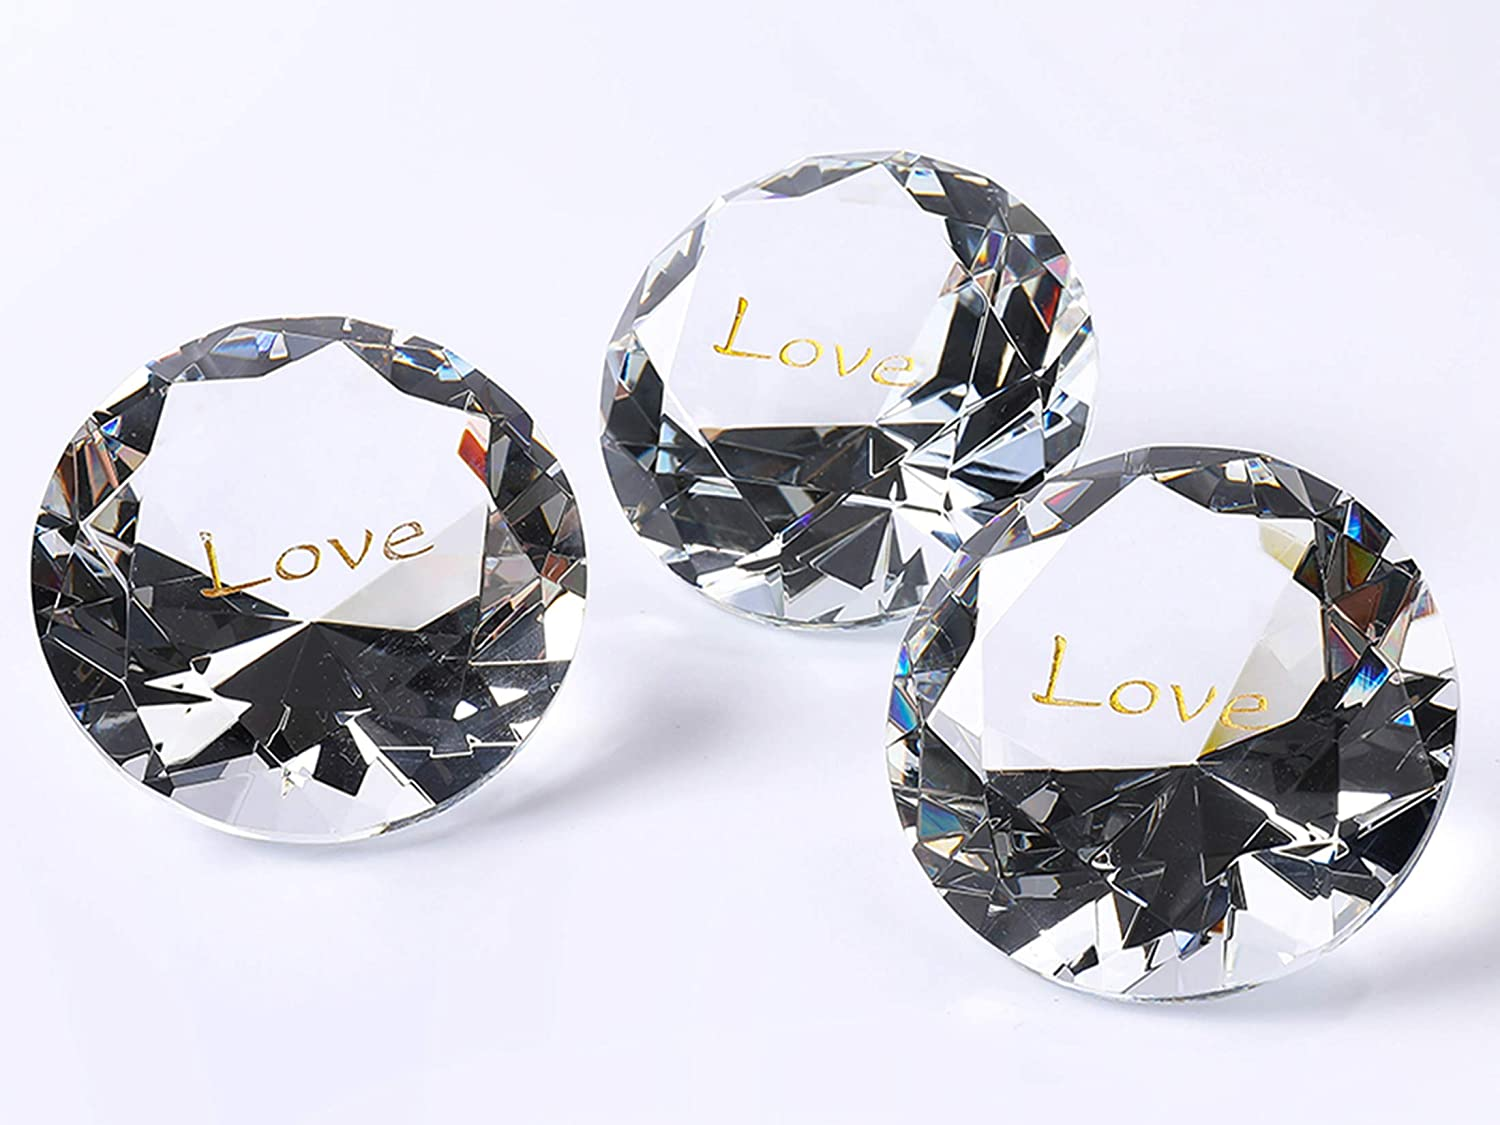 "ROCKIMPACT 12PCS Love 60mm (2.5"") Extra-Large Engraved Clear Crystal Diamond Home Décor, Prism Suncatcher Rainbow Maker, Wedding Table Decoration, Paperweight Affection Love Diamond Glass Crystals"